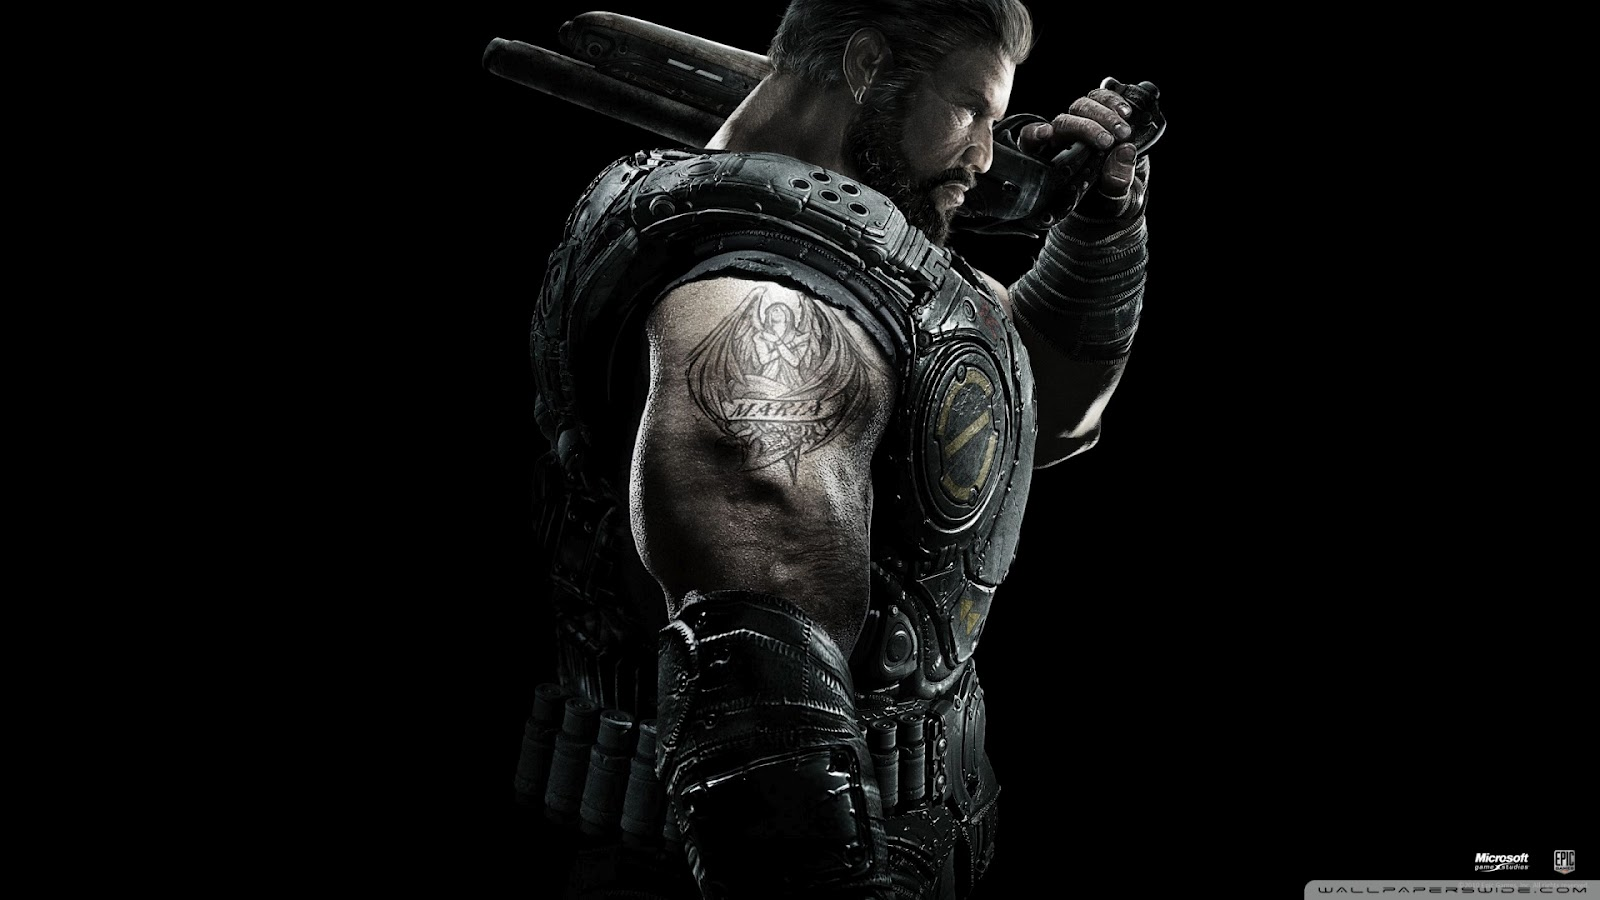 Gears of War HD & Widescreen Wallpaper 0.235921844082859